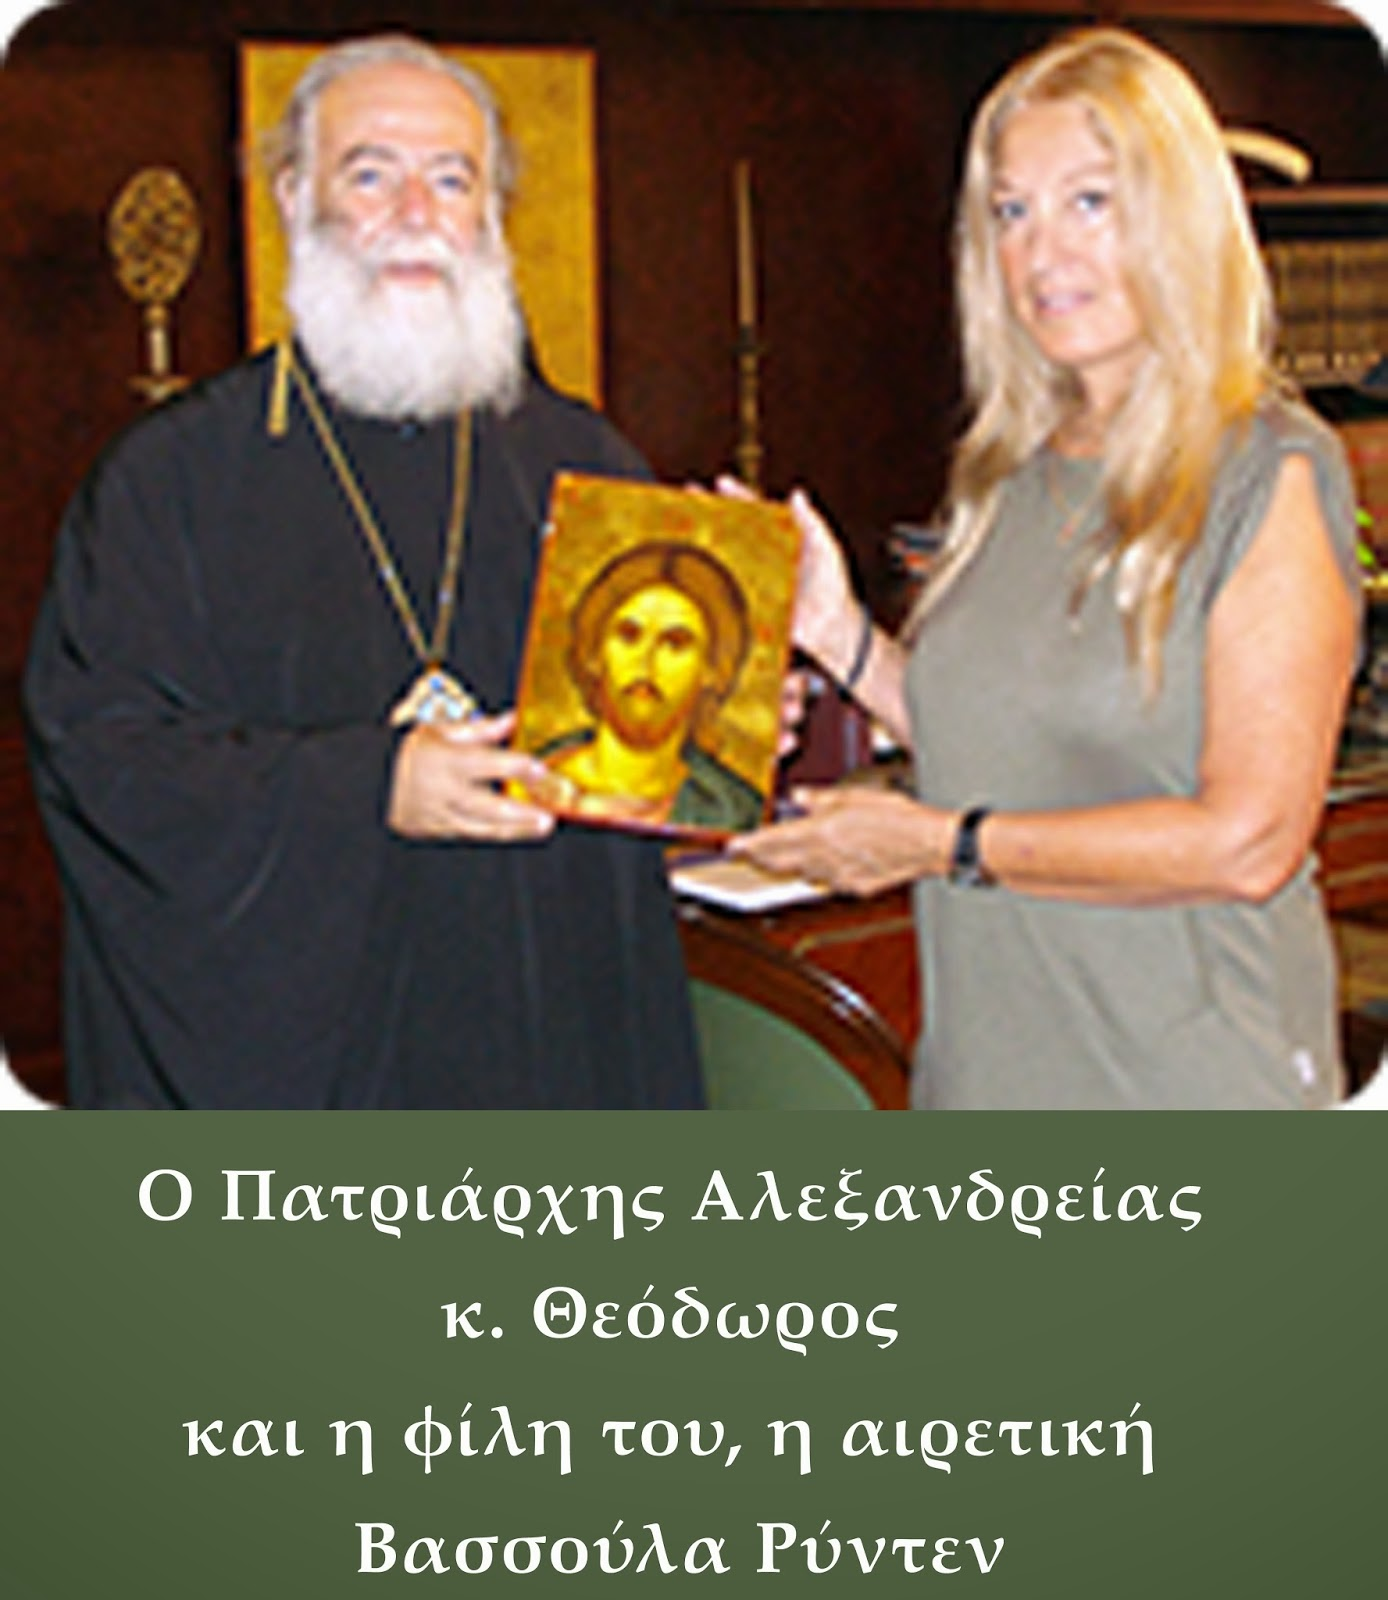 Vassula_and_the_Patriarch αντίγραφο.jpg